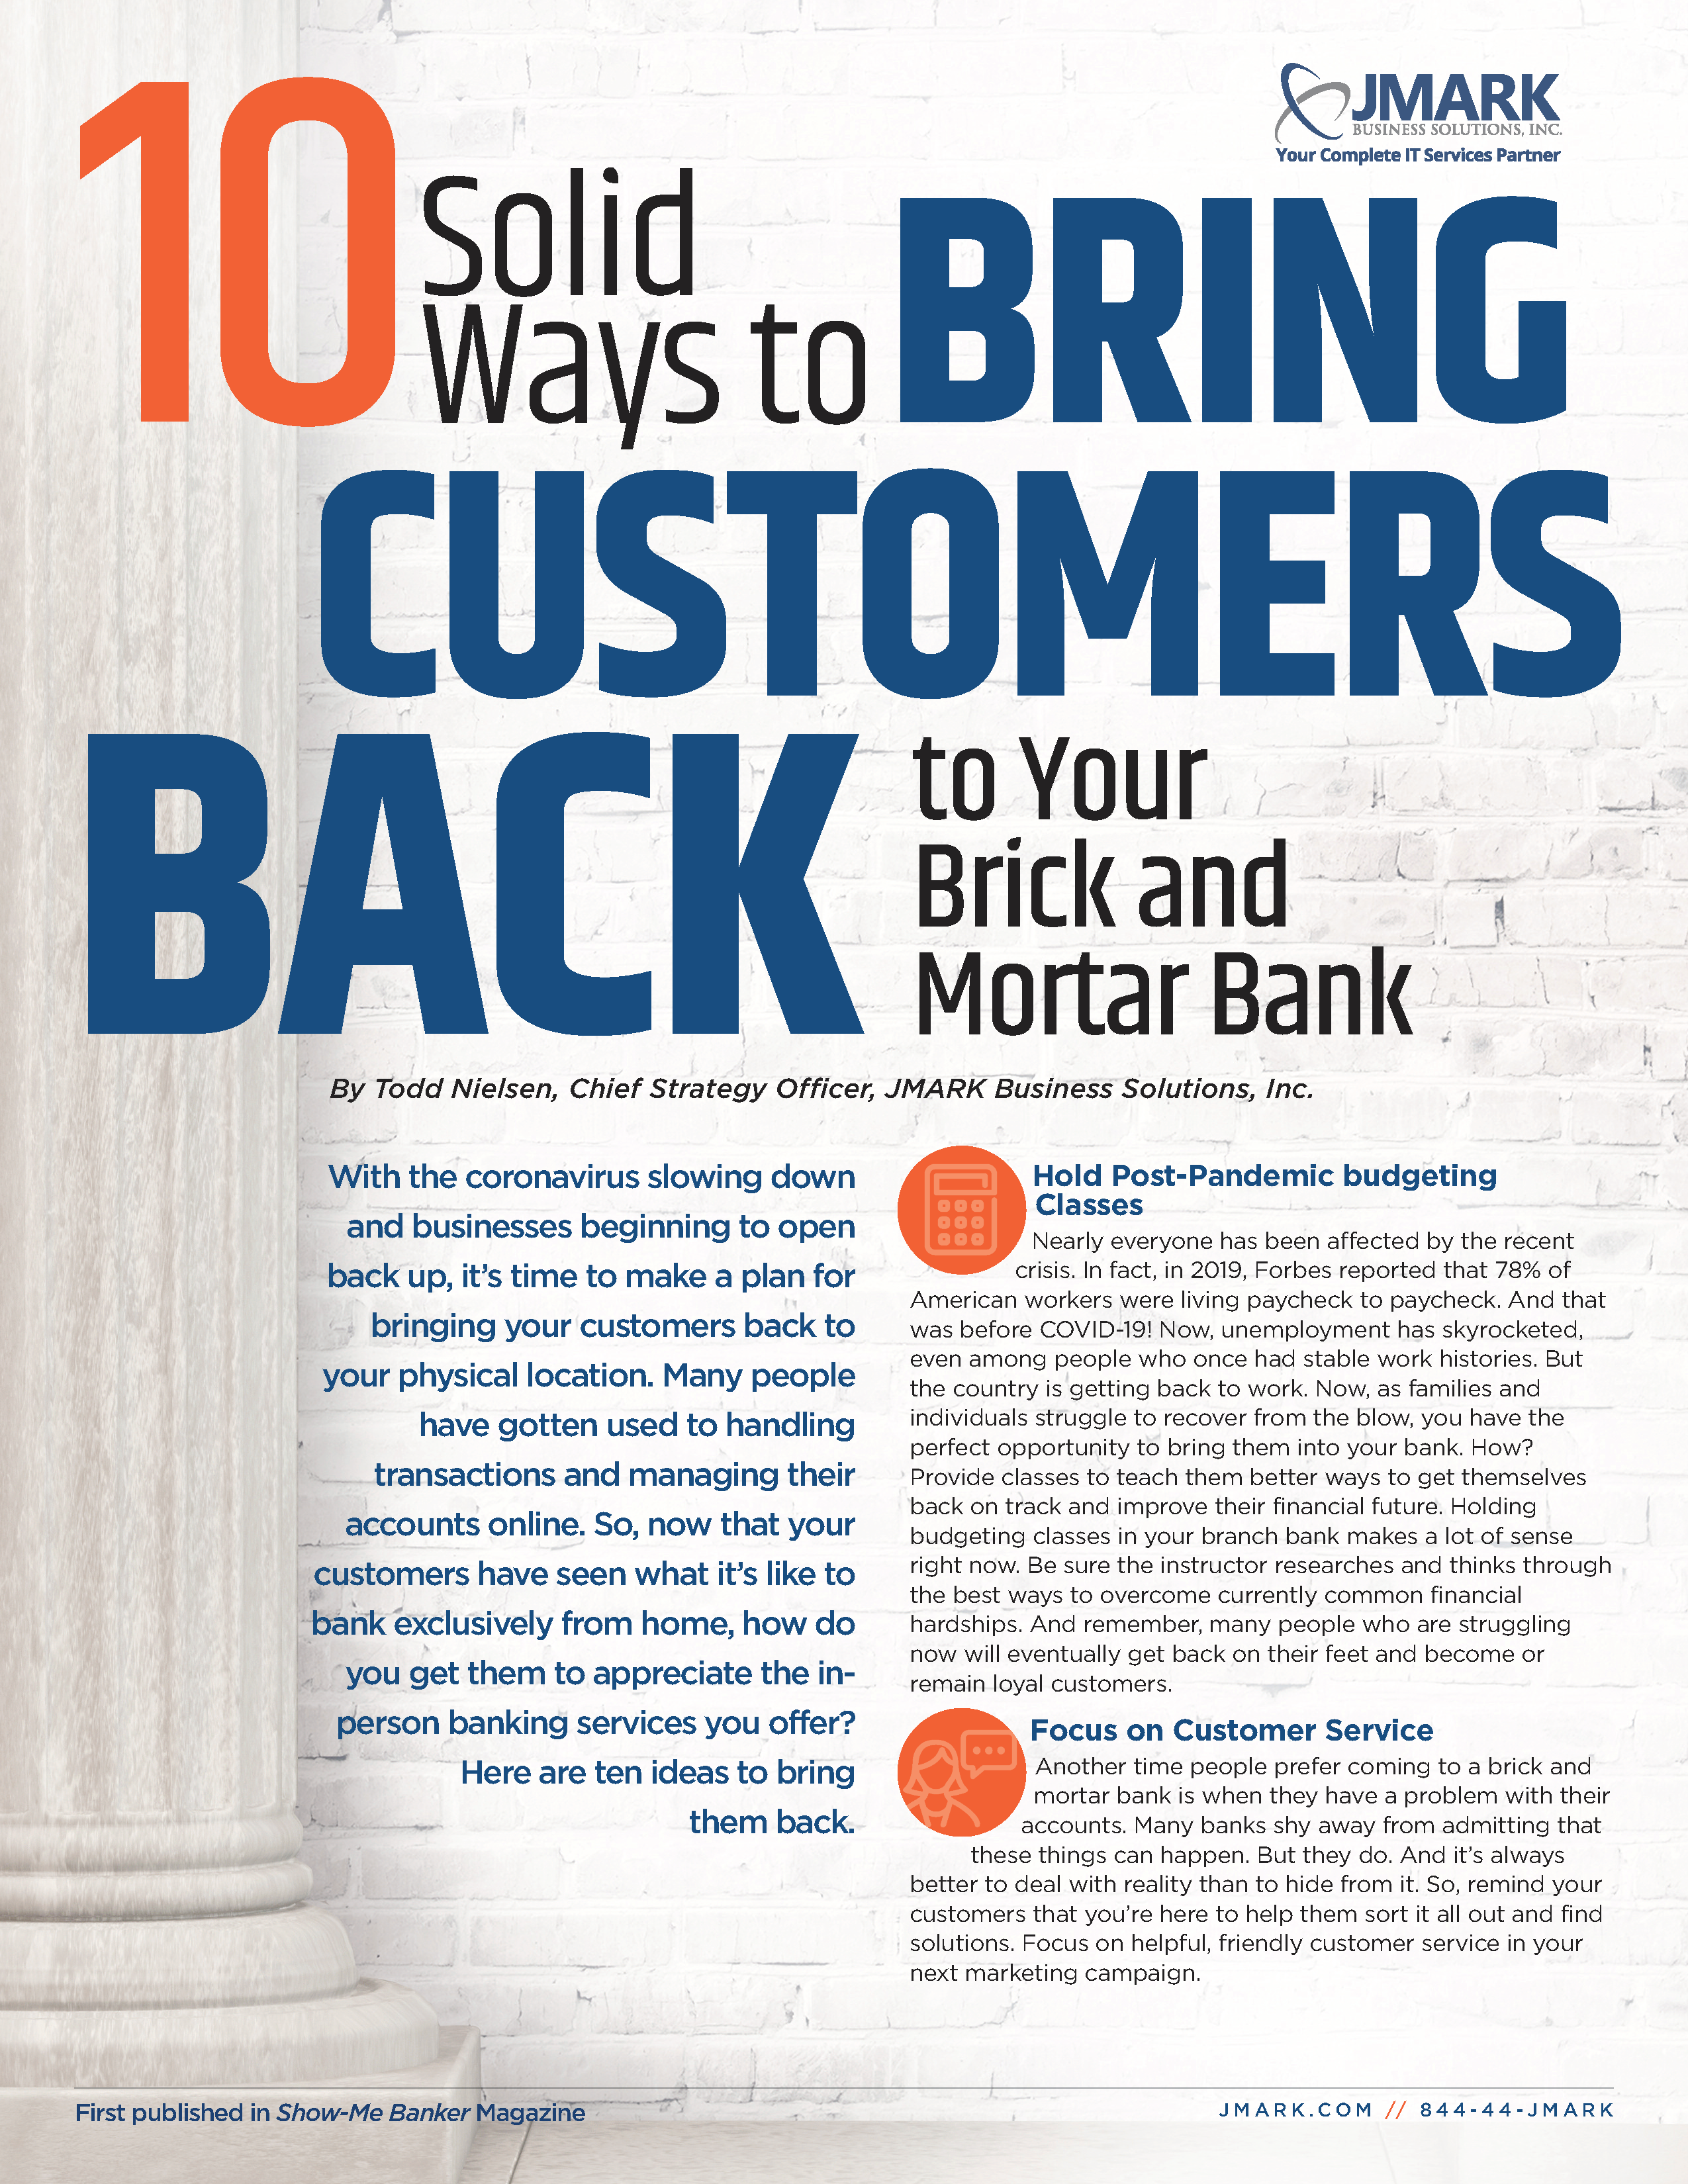 10 Ways to Bring Customers Back to Your Brick and Mortar Bank_Page_1